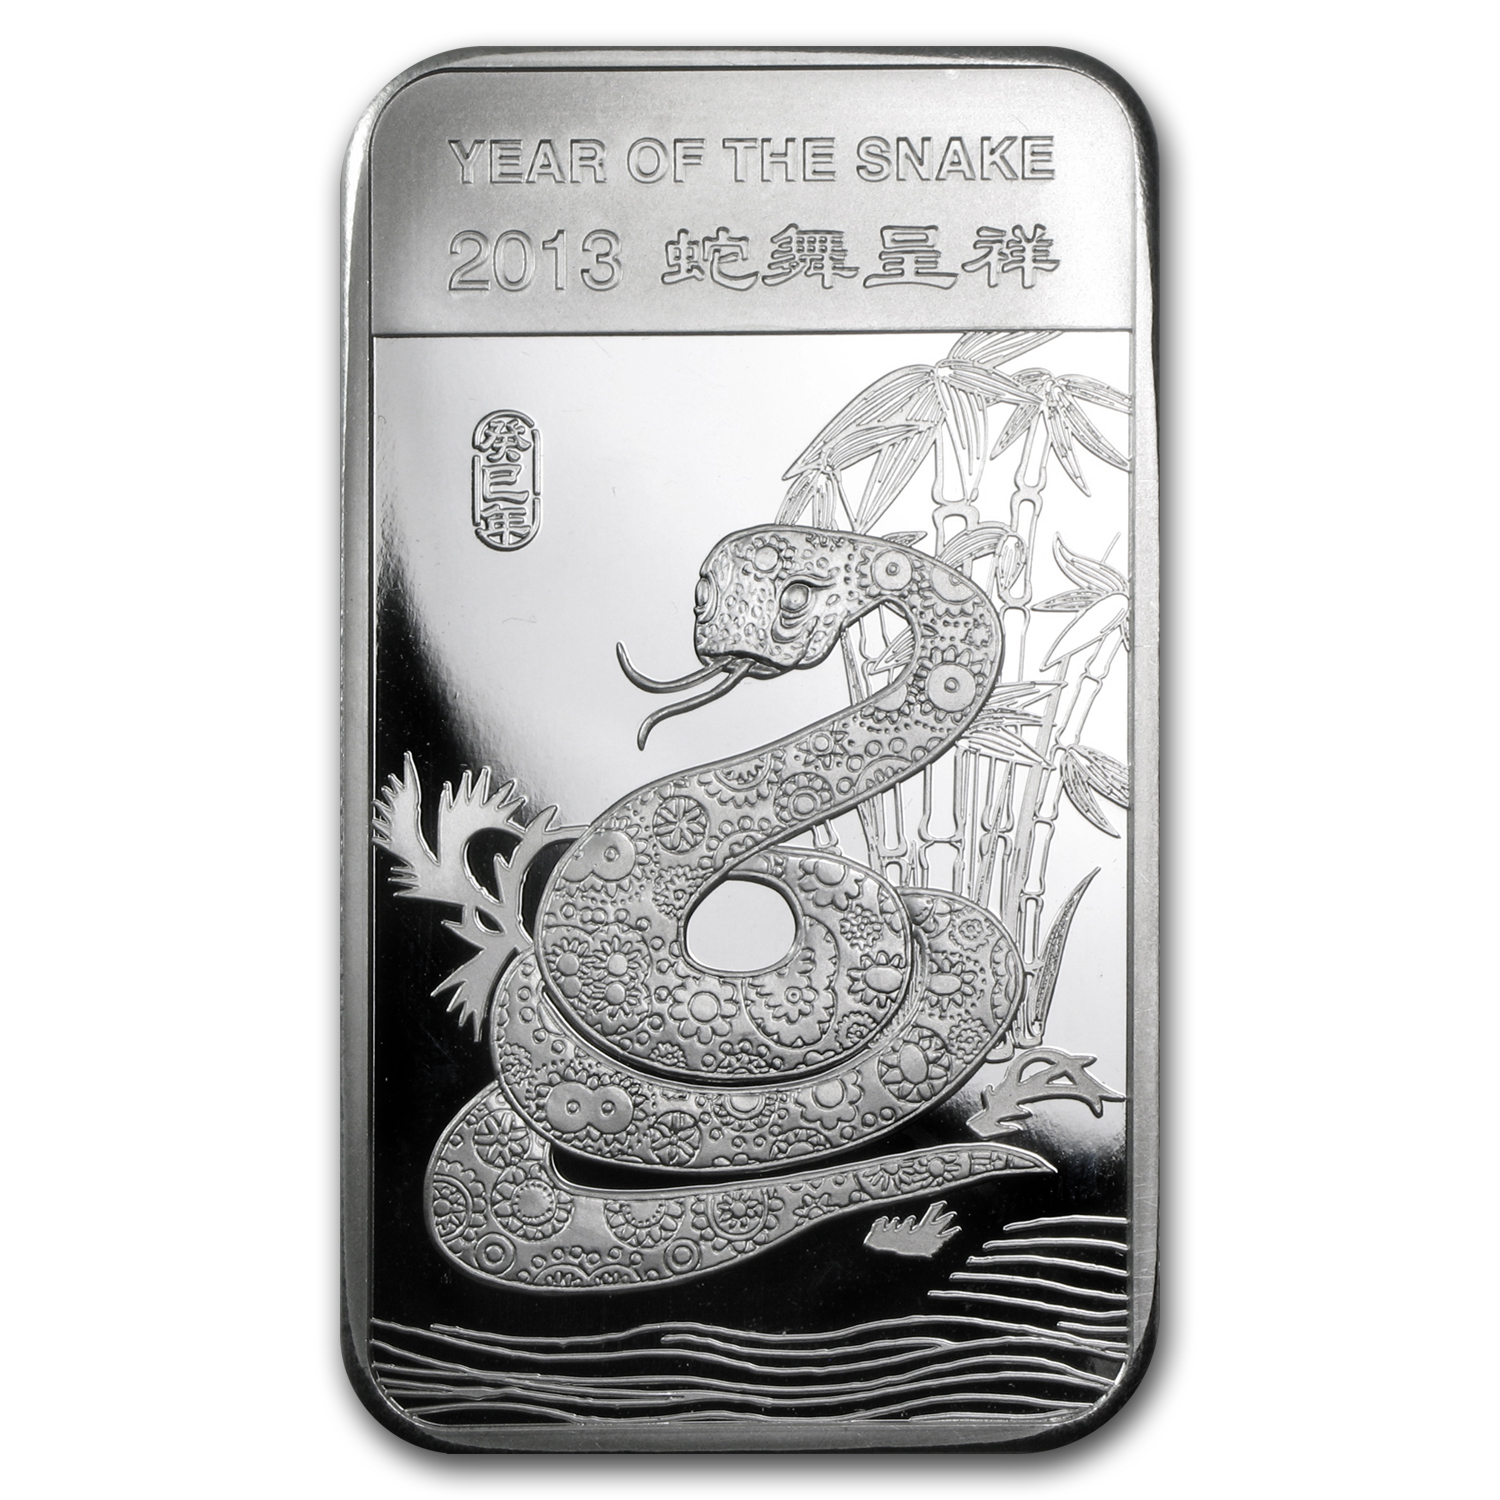 5 oz Silver Bars - Year of the Snake